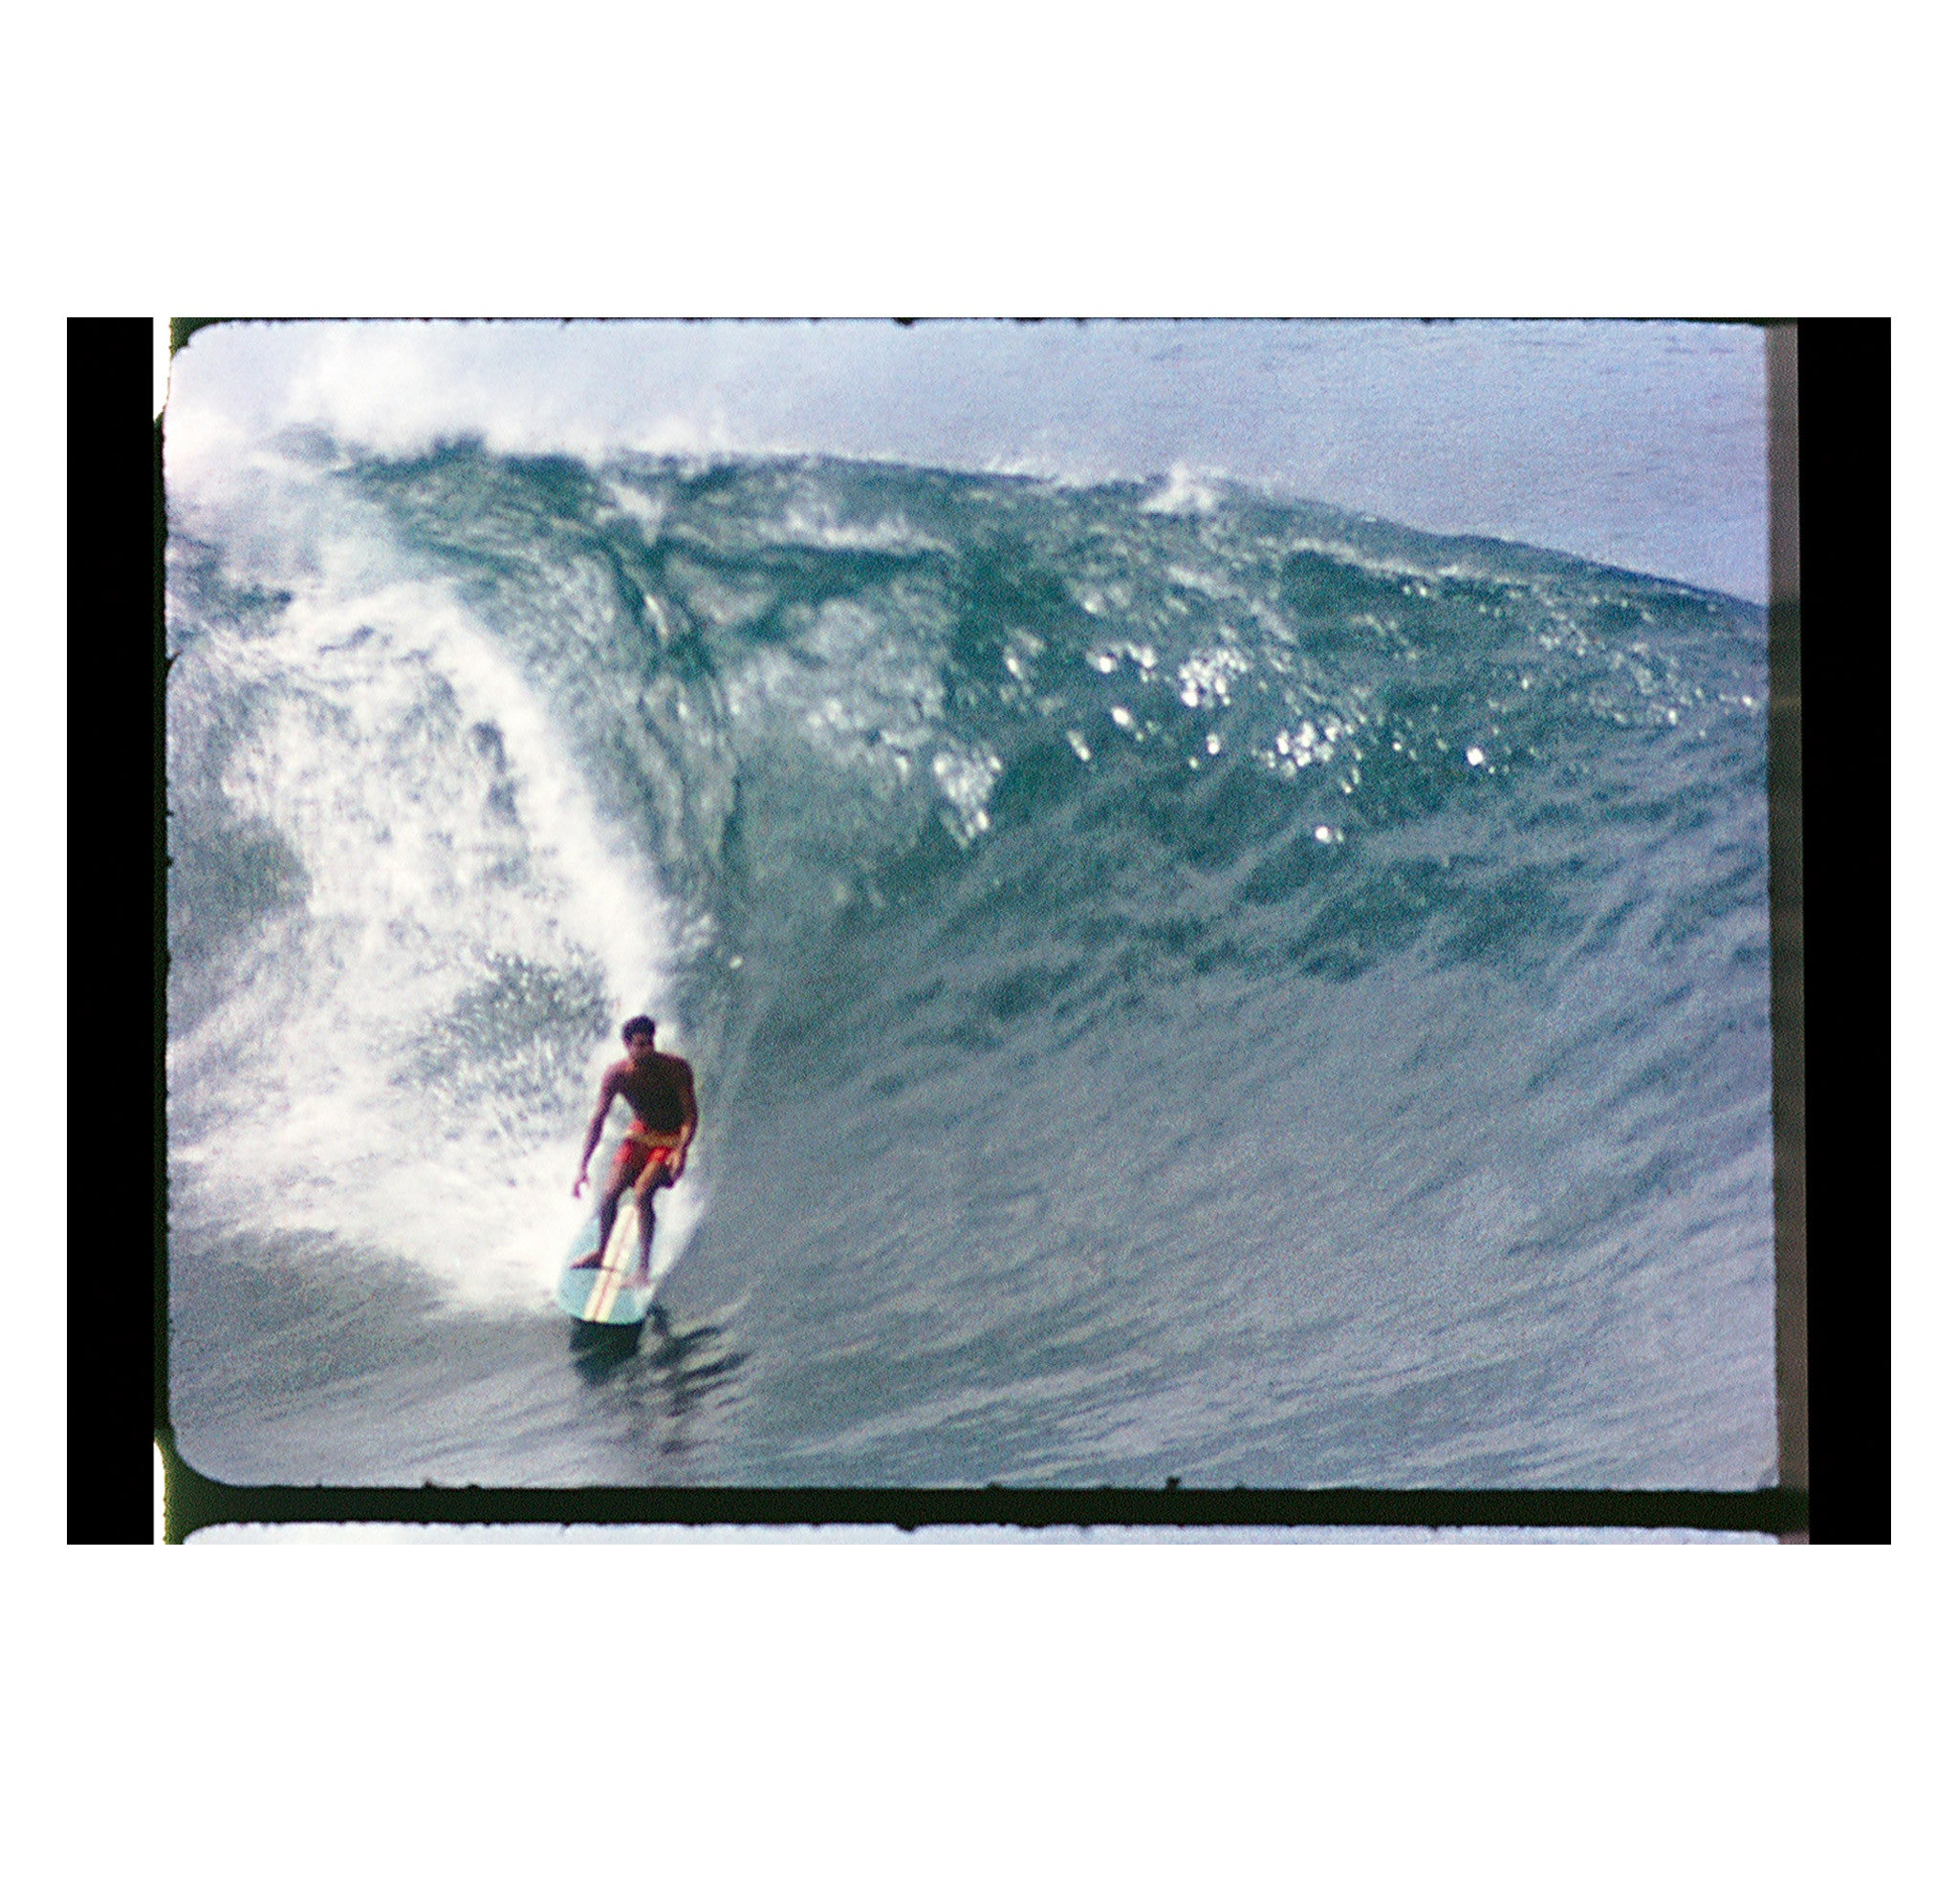 Grant Rohloff – Miki Dora, North Shore 2